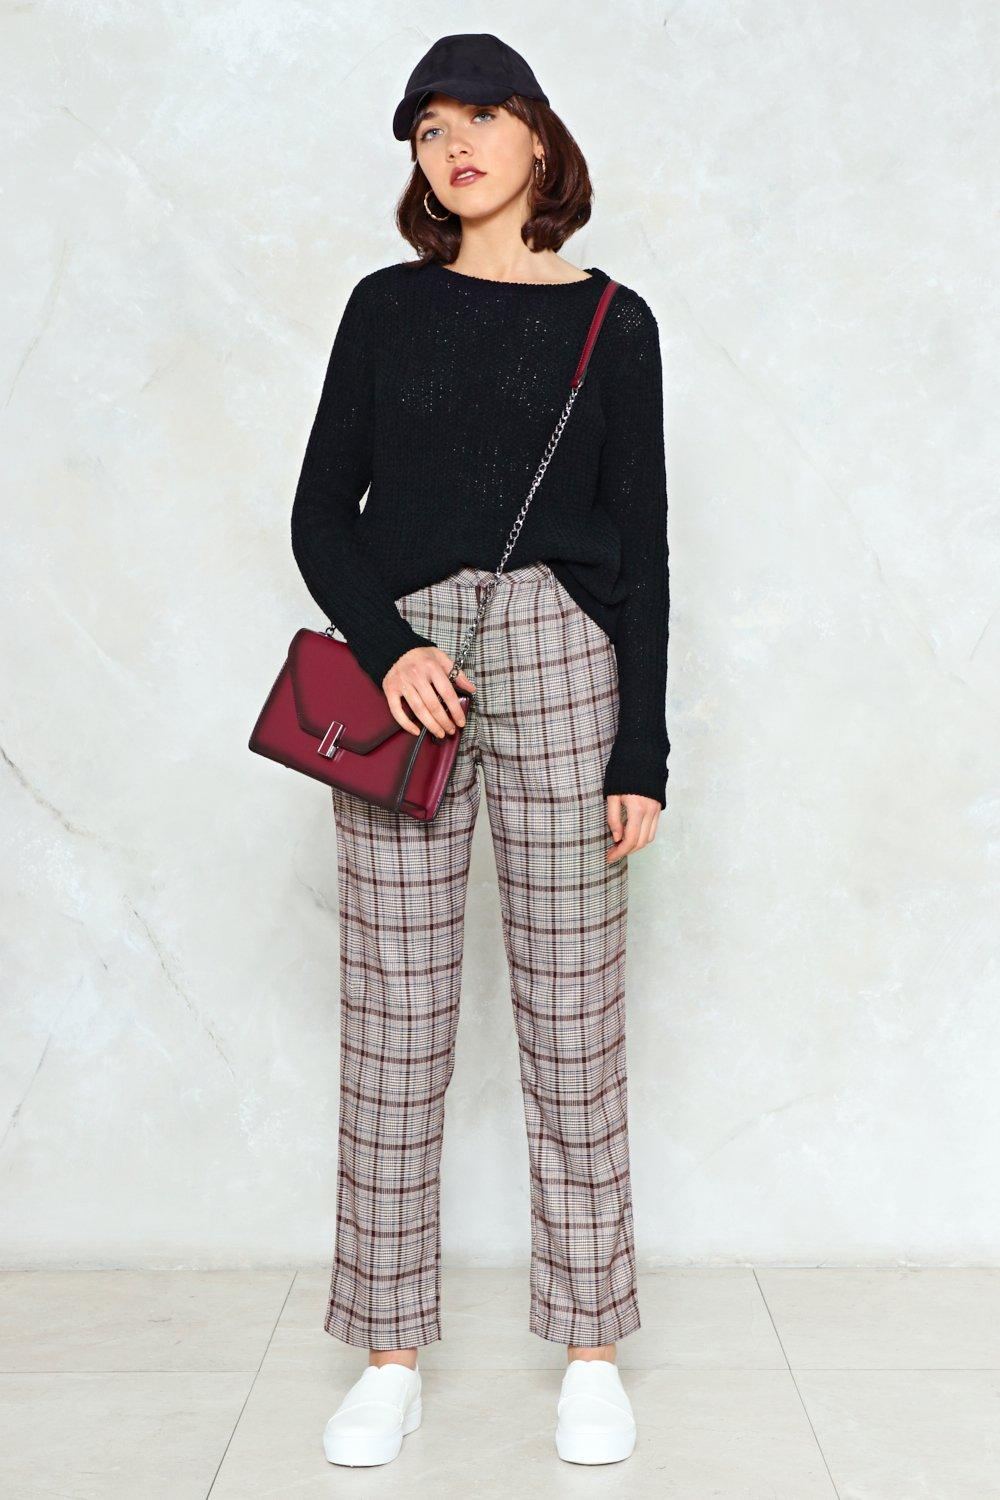 47121e453d80 Are You Sure About That Checkered High-Waisted Pant